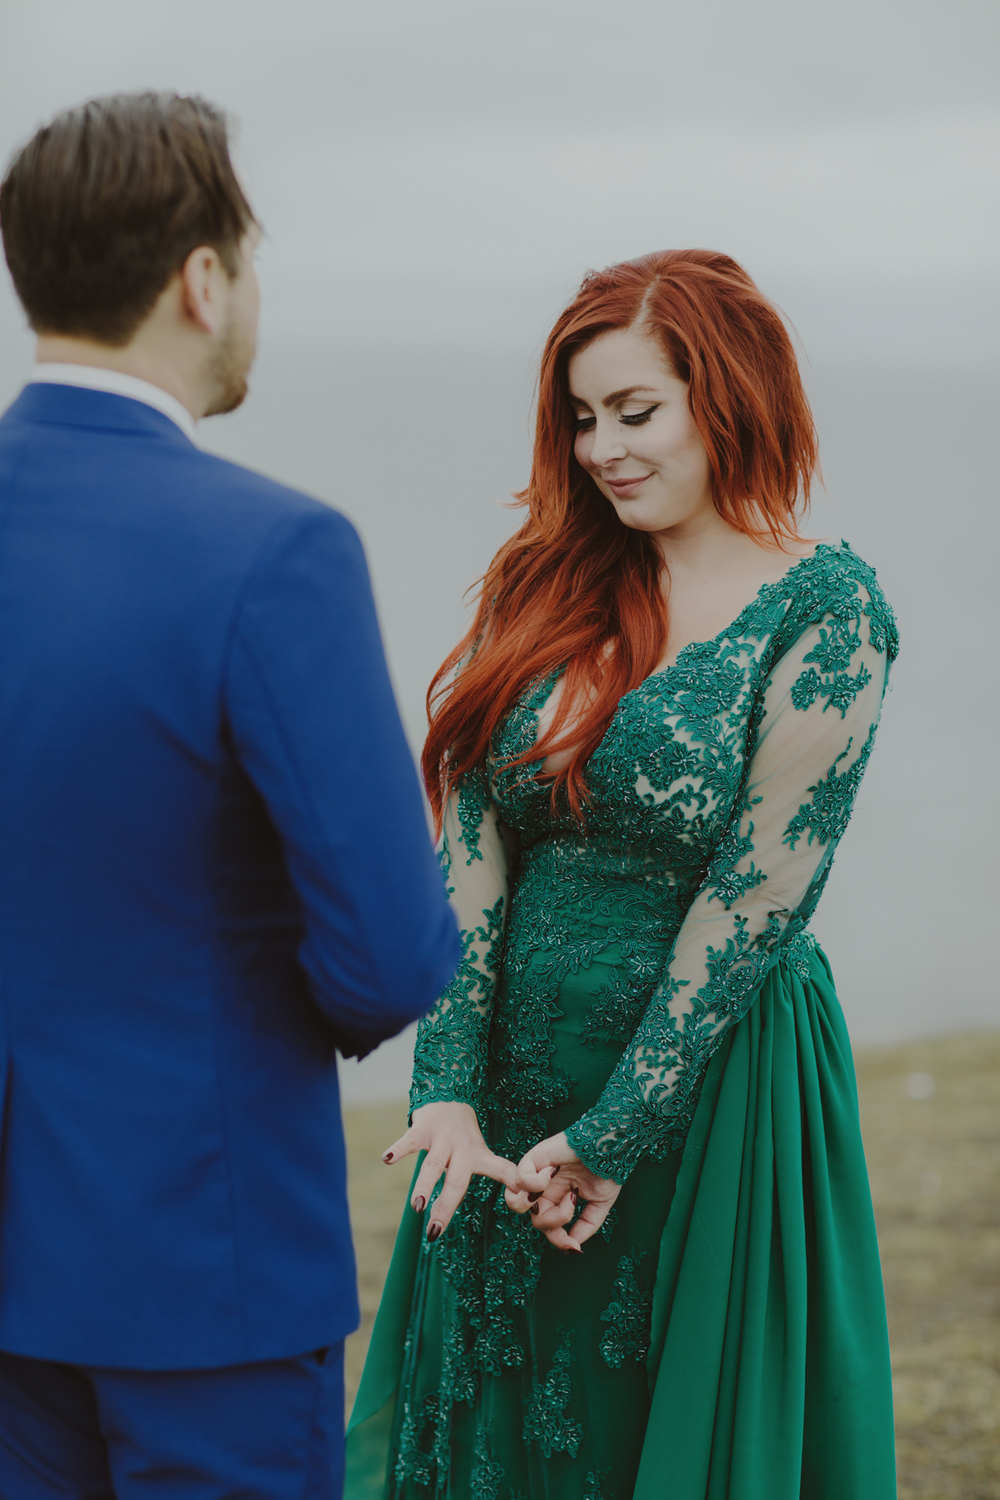 iceland_elopement_wedding_sammblake_043.jpg